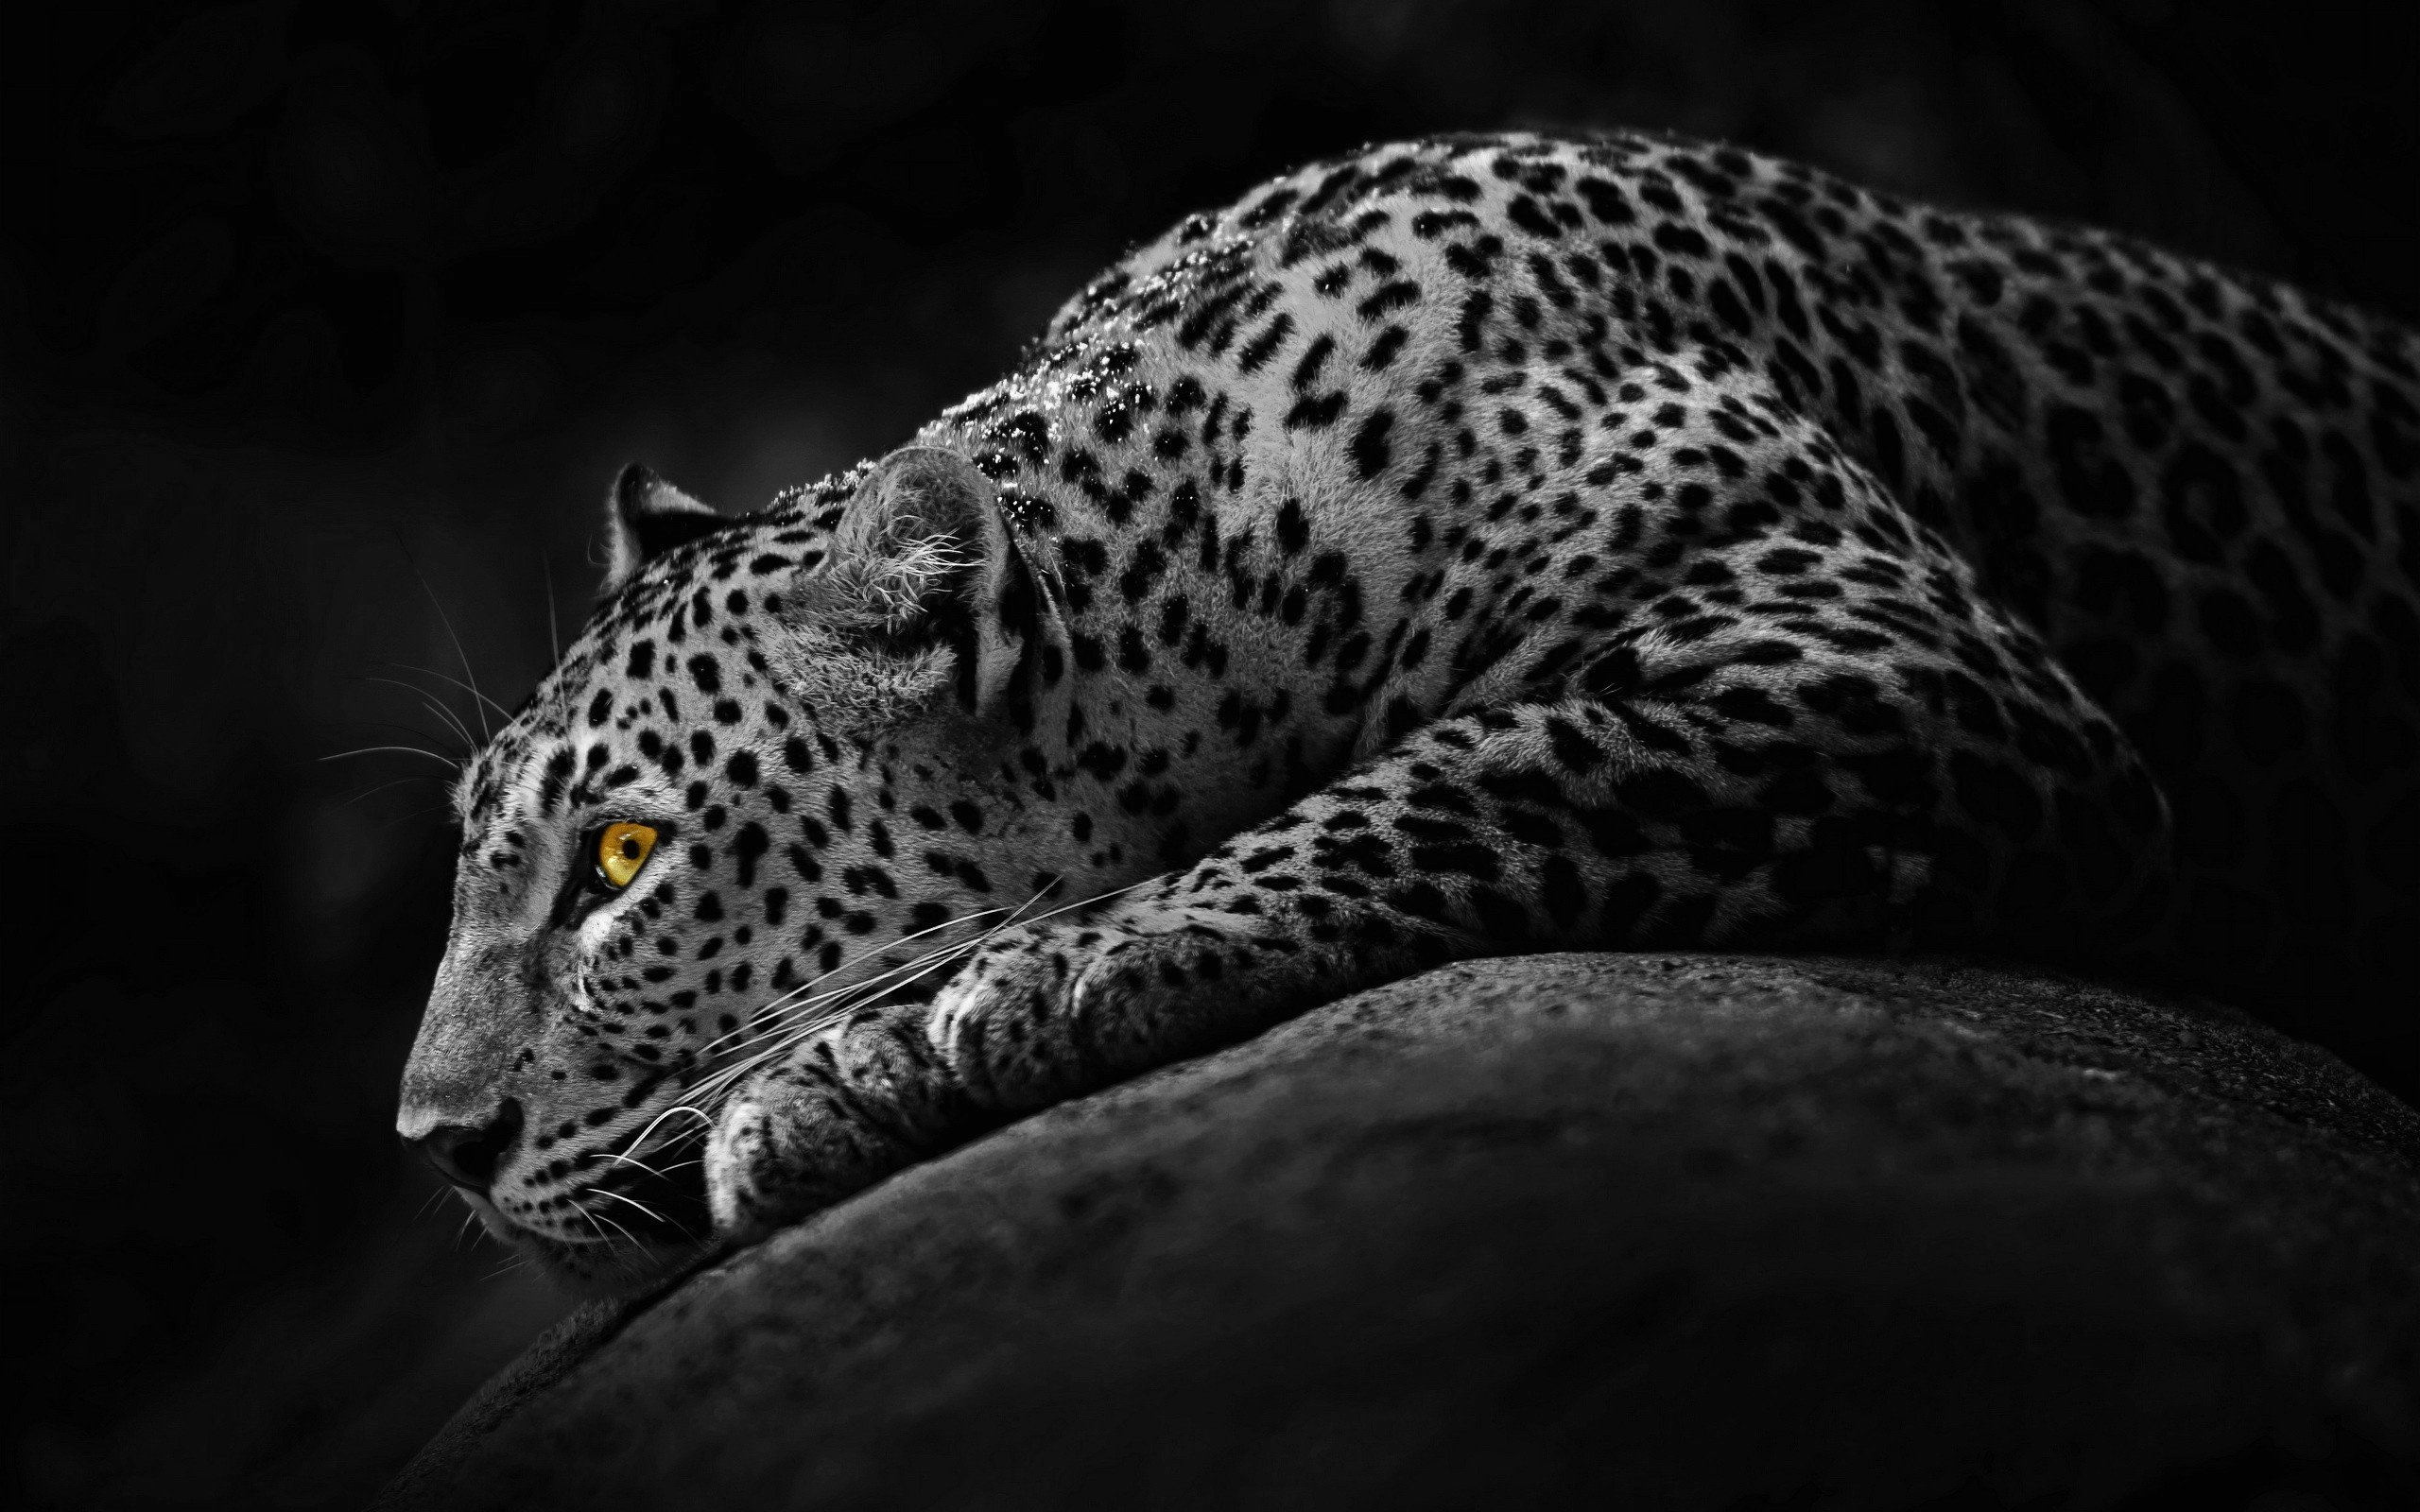 71 black jaguar wallpaper on wallpapersafari - Jaguar animal hd wallpapers ...